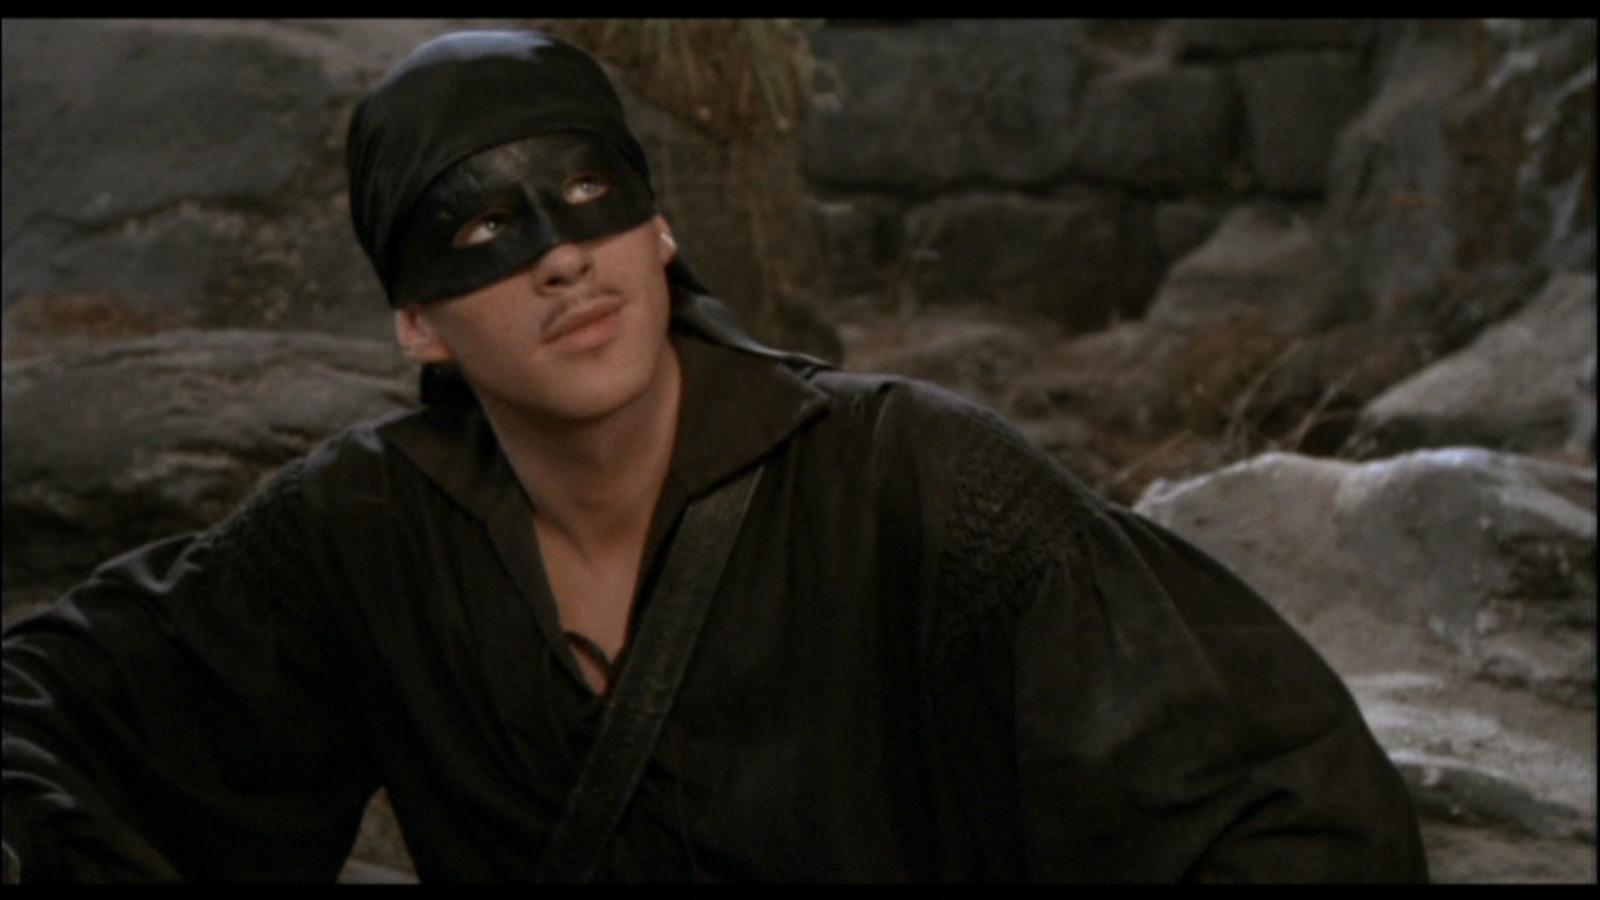 5 Lessons In Business Success From The Princess Bride